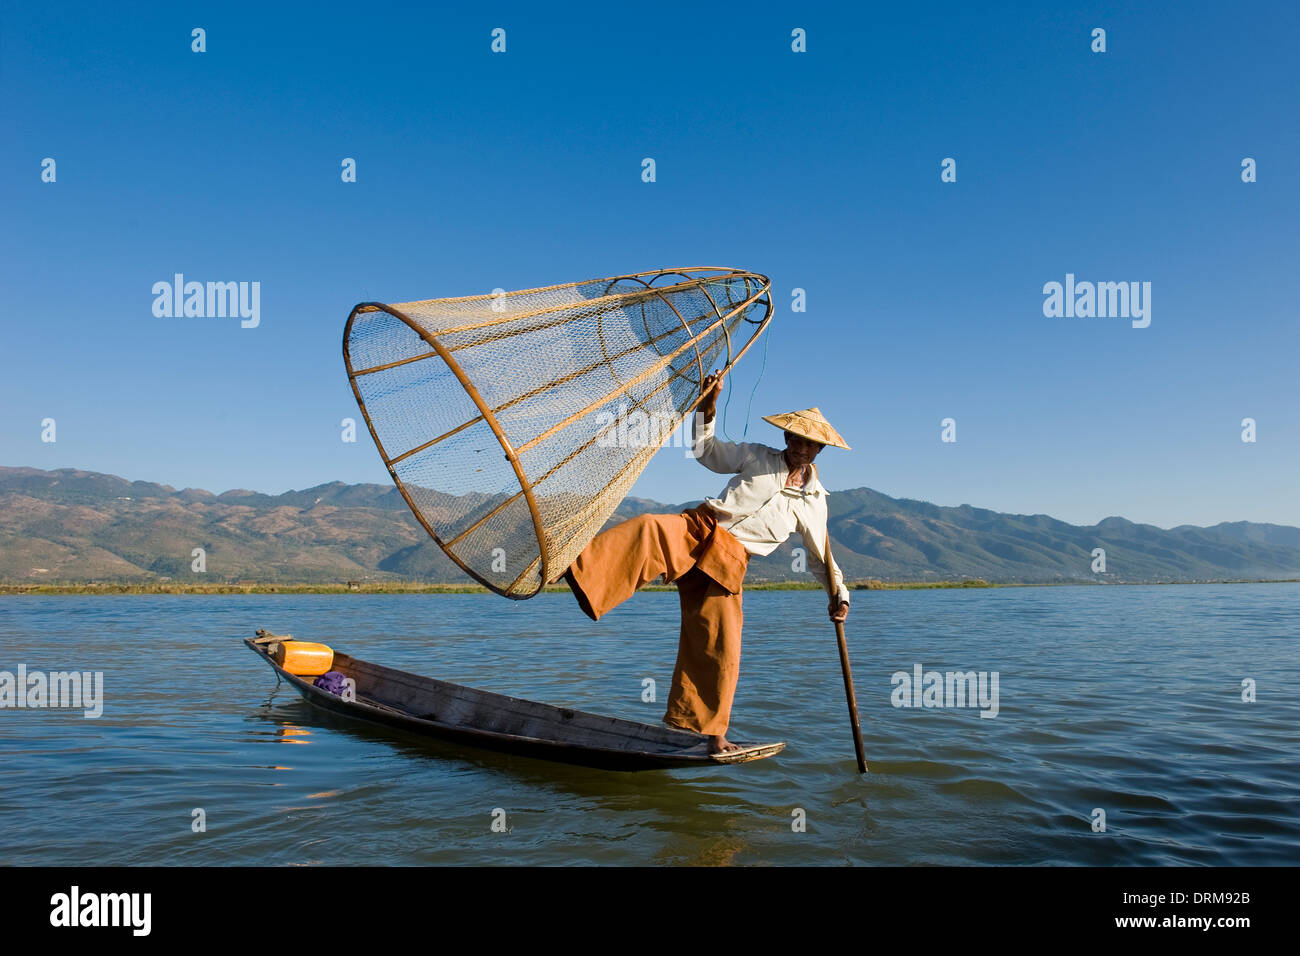 Myanmar, Inle lake, fisherman - Stock Image